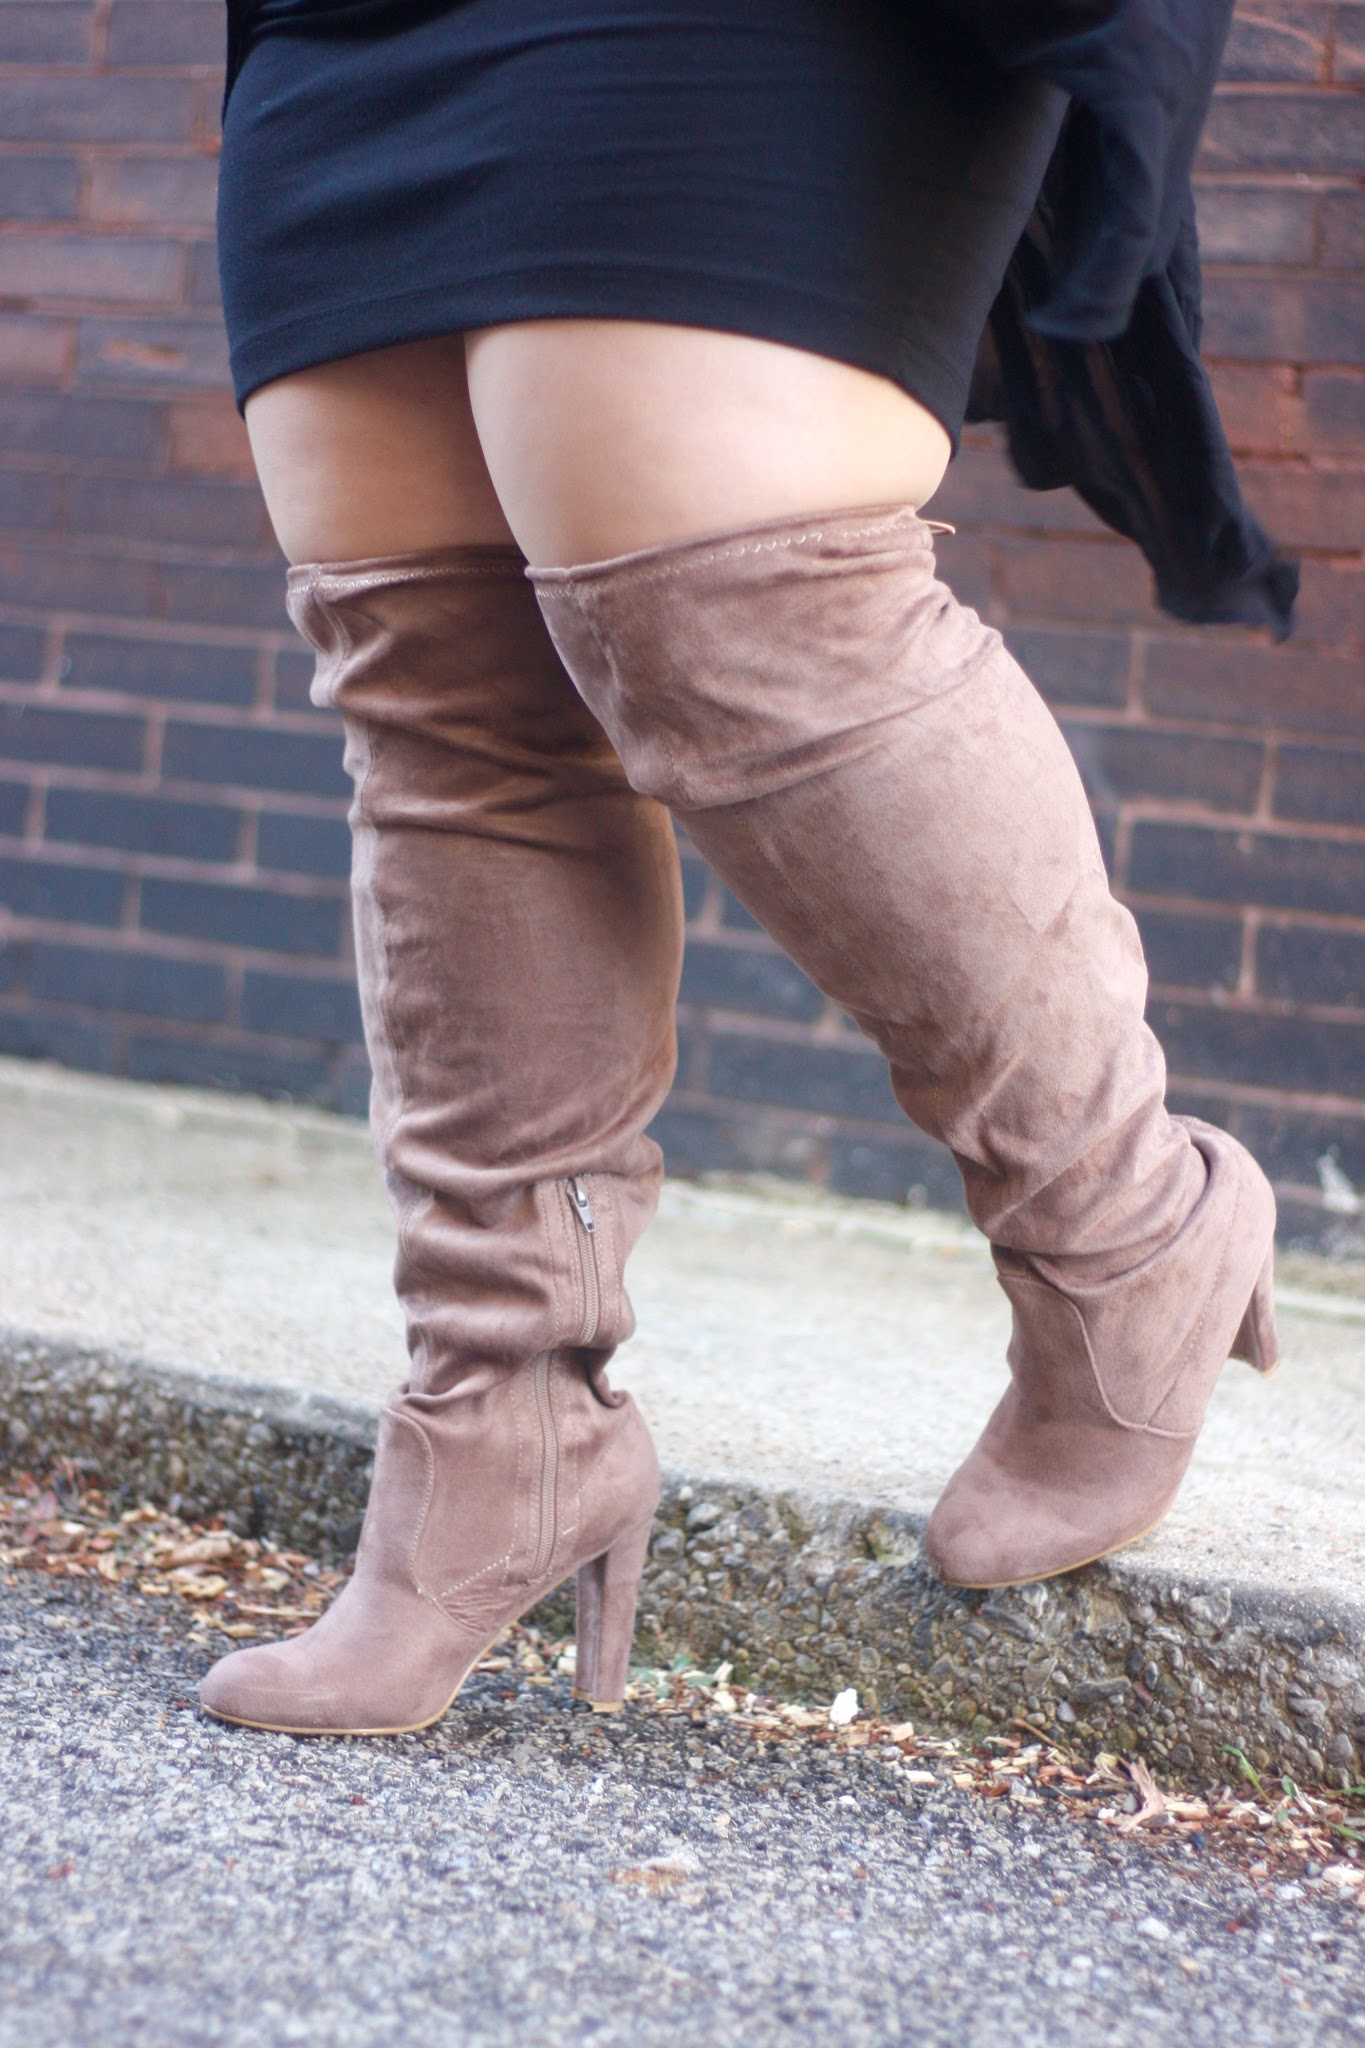 Natalie in the City shares cute thigh high wide calf boots and styles a plus size dress with knee high boots.